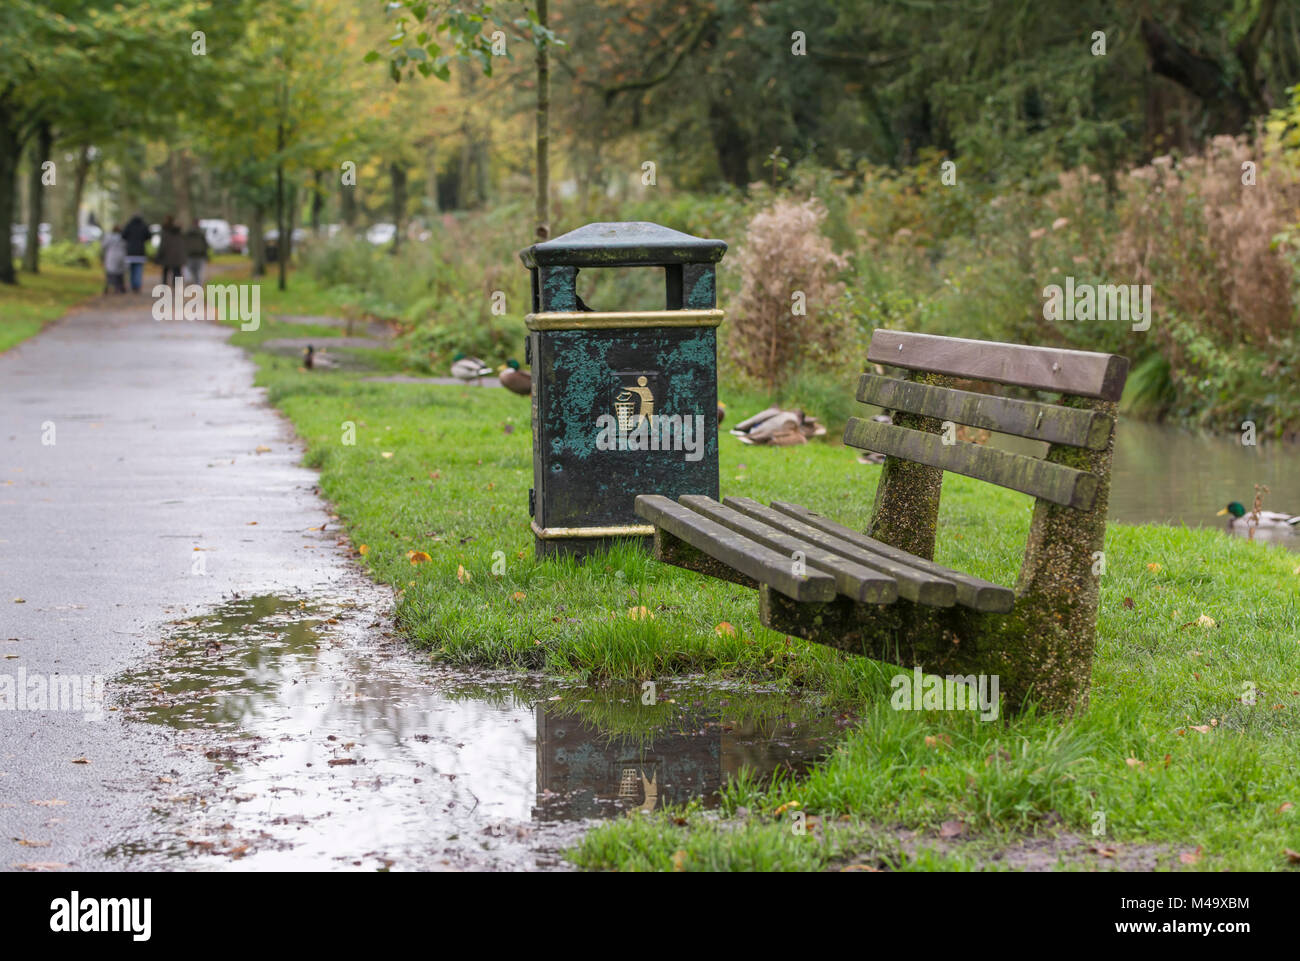 Wooden park bench after heavy rain with a large puddle and nobody sitting in Autumn in England, UK. - Stock Image